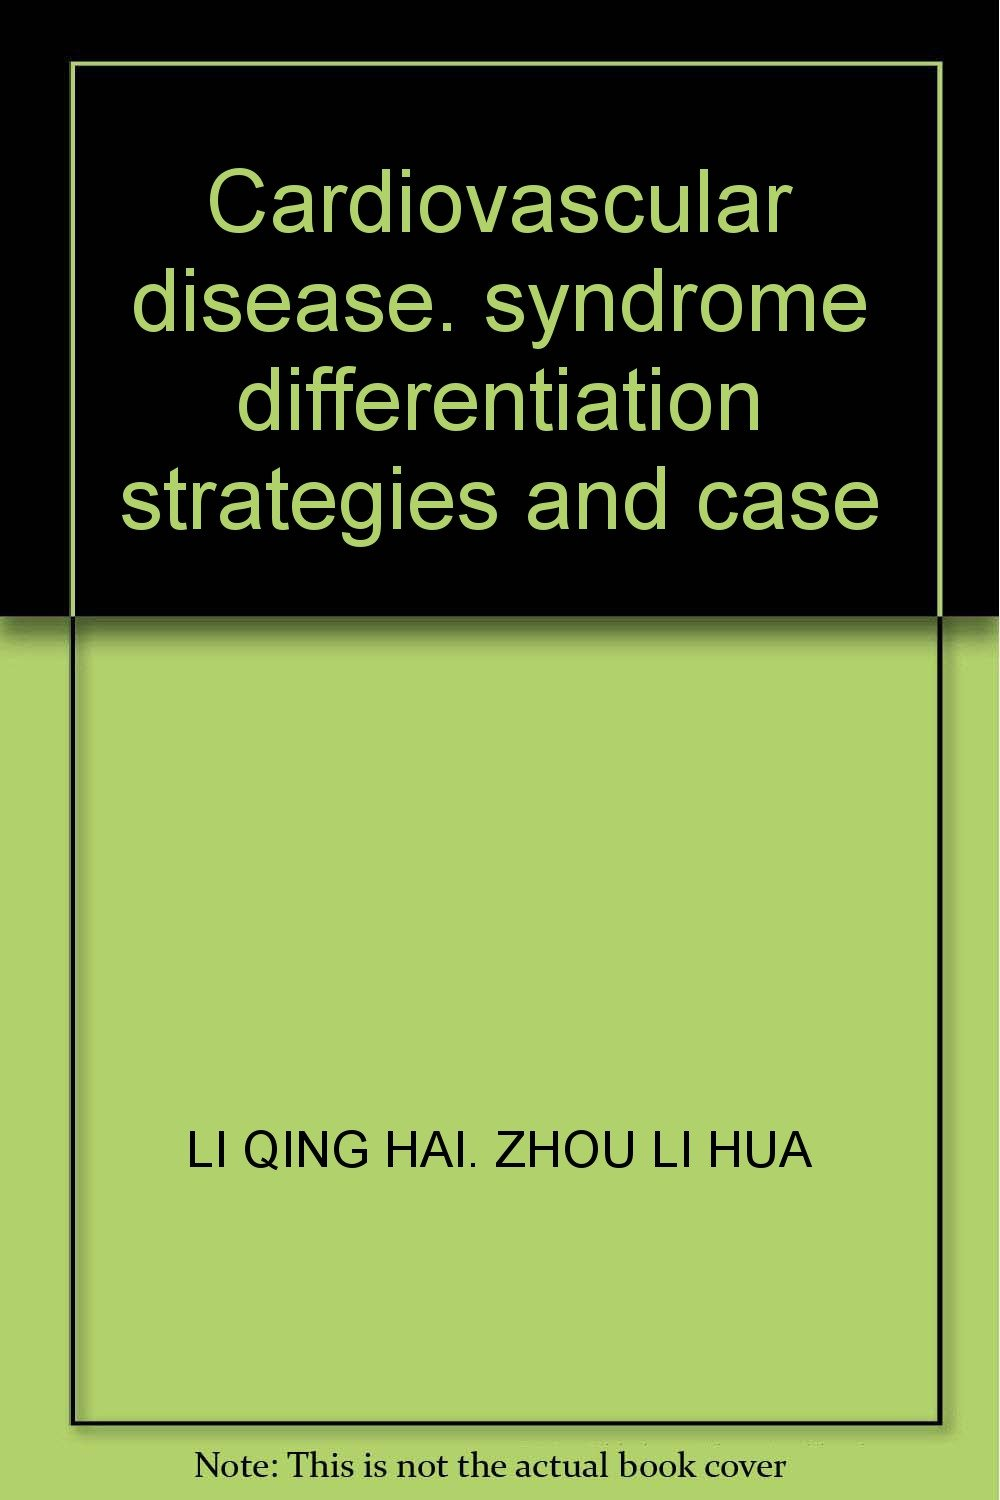 Cardiovascular disease. syndrome differentiation strategies and case pdf